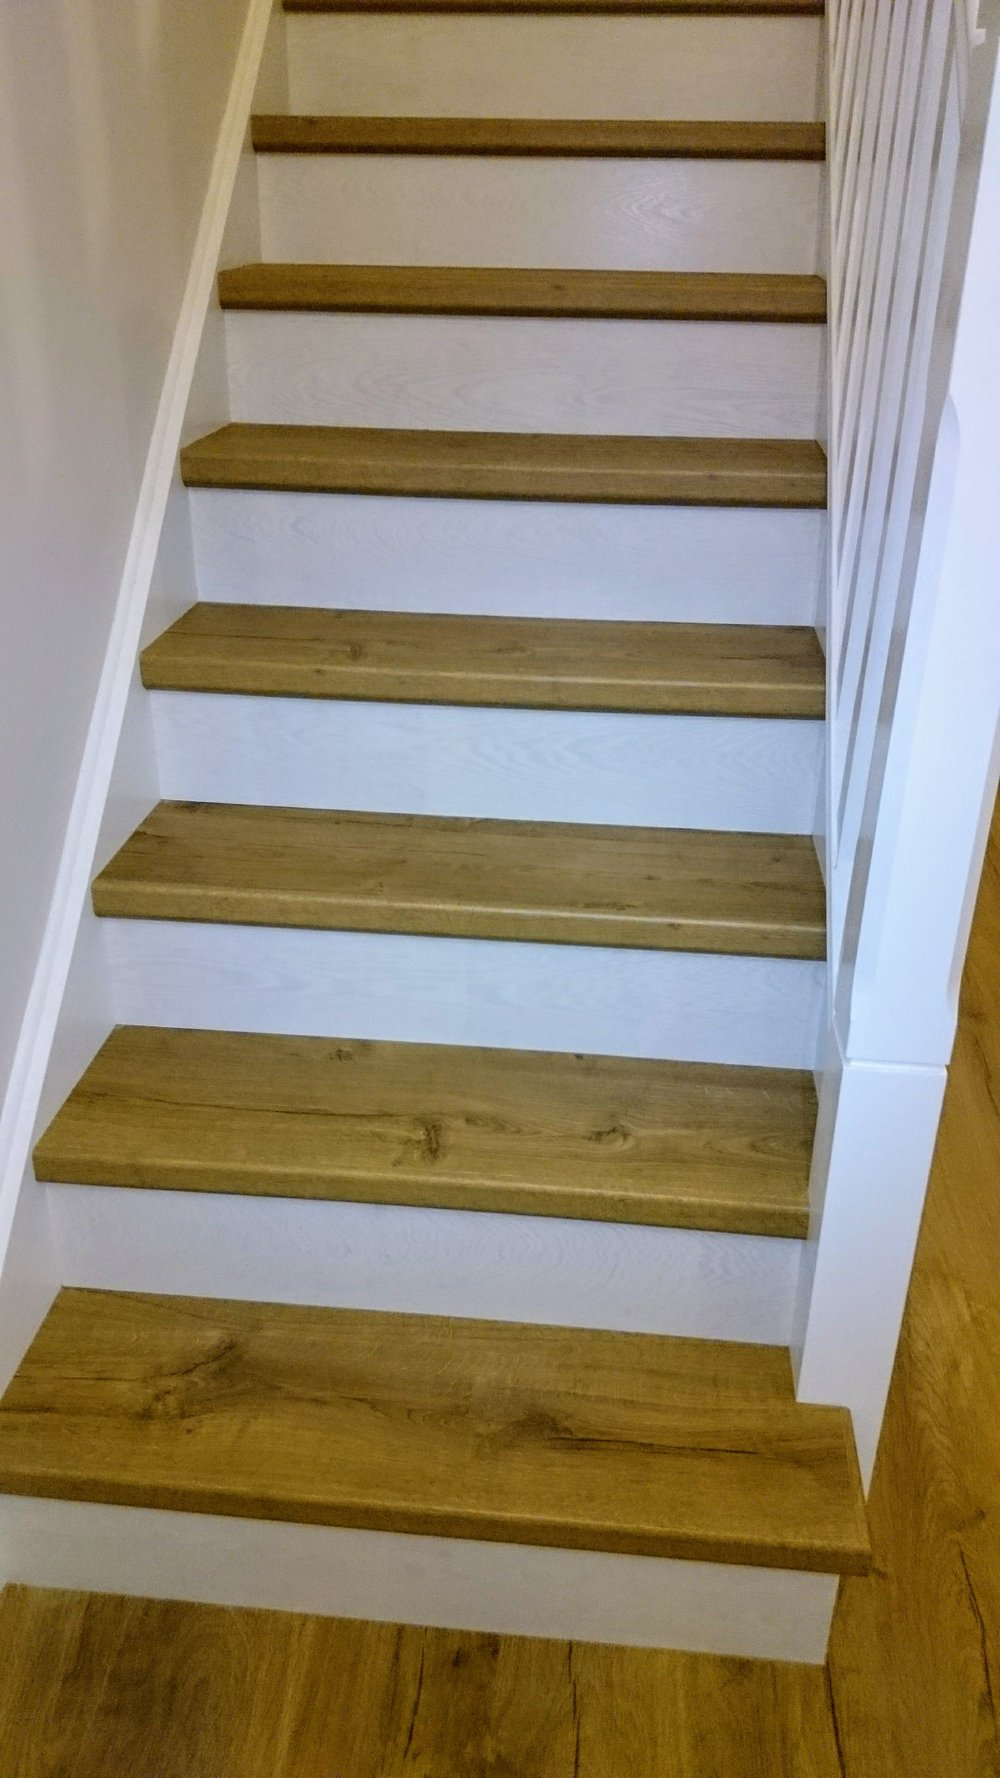 CLASSIC OAK NATURAL Quick-Step Floor IMPRESSIVE RANGE ON STAIRS by http://www.BARGAINFLOORING.ie  #LoveMyQuickStep at www.Belltree.ie , Clongriffin , Dublin13 , North Dublin City . This is 3 Bedroom 'A '-rated home built by www.gannonhomes.ie development .